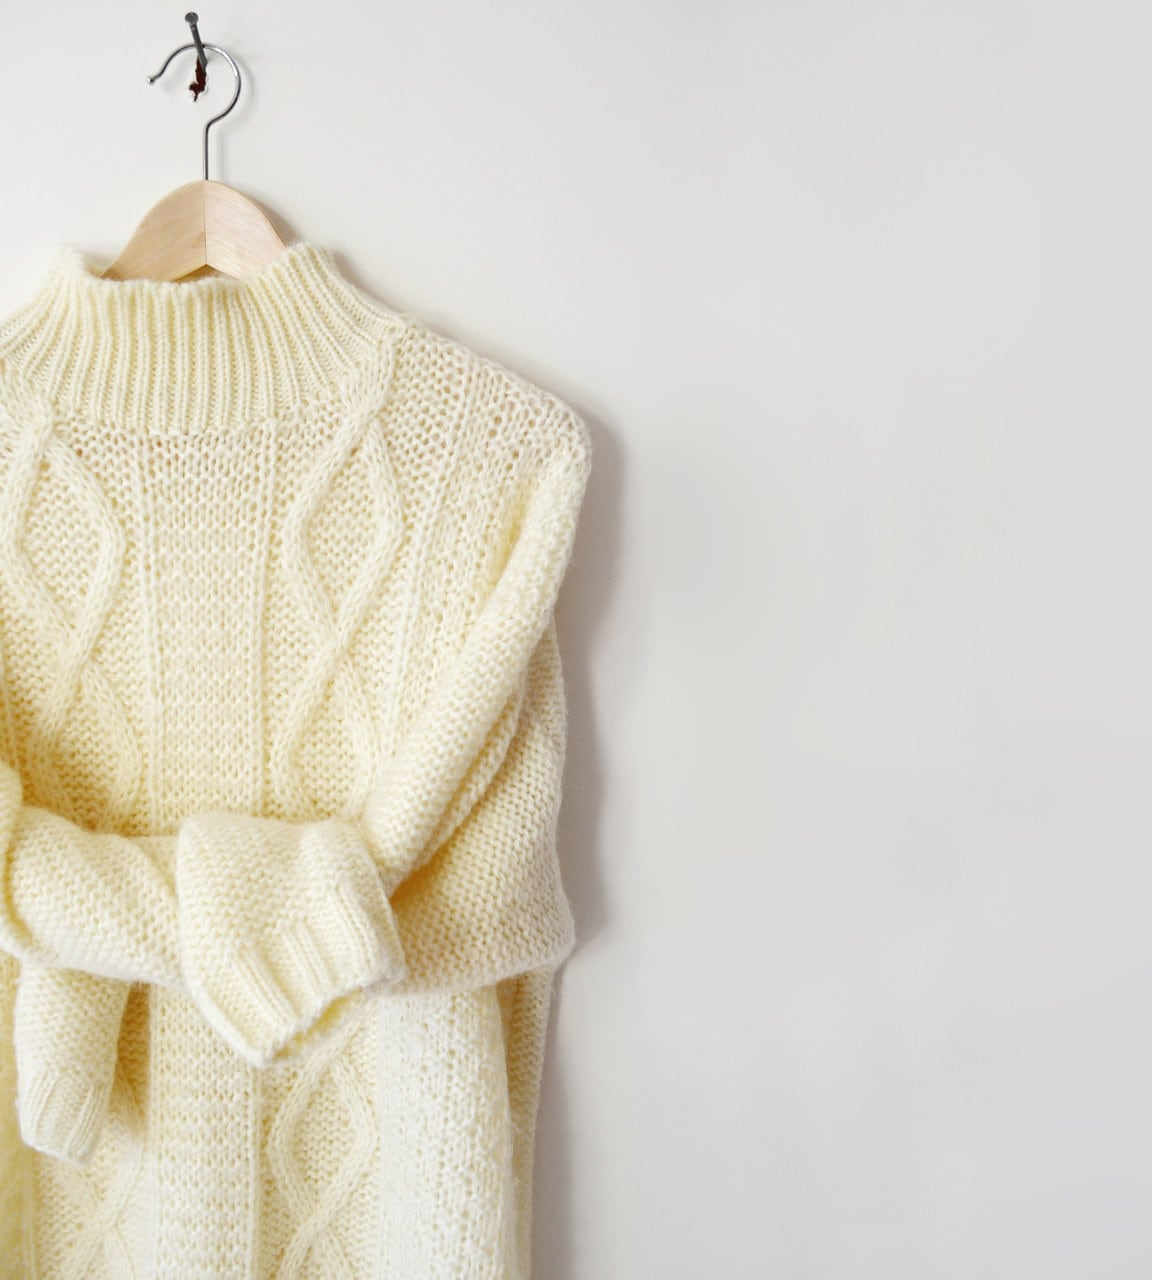 This season its all about luxe knitwear and you can indulge H to T with our rad range of knitted ditties. From turtleneck to racer back styles in fine a chunky knits, you'll be eager to get your knits out at every opportunity! A sweater dress is the perfect choice for chillier days and is guaranteed to make you feel cozy and comfy in an instant.